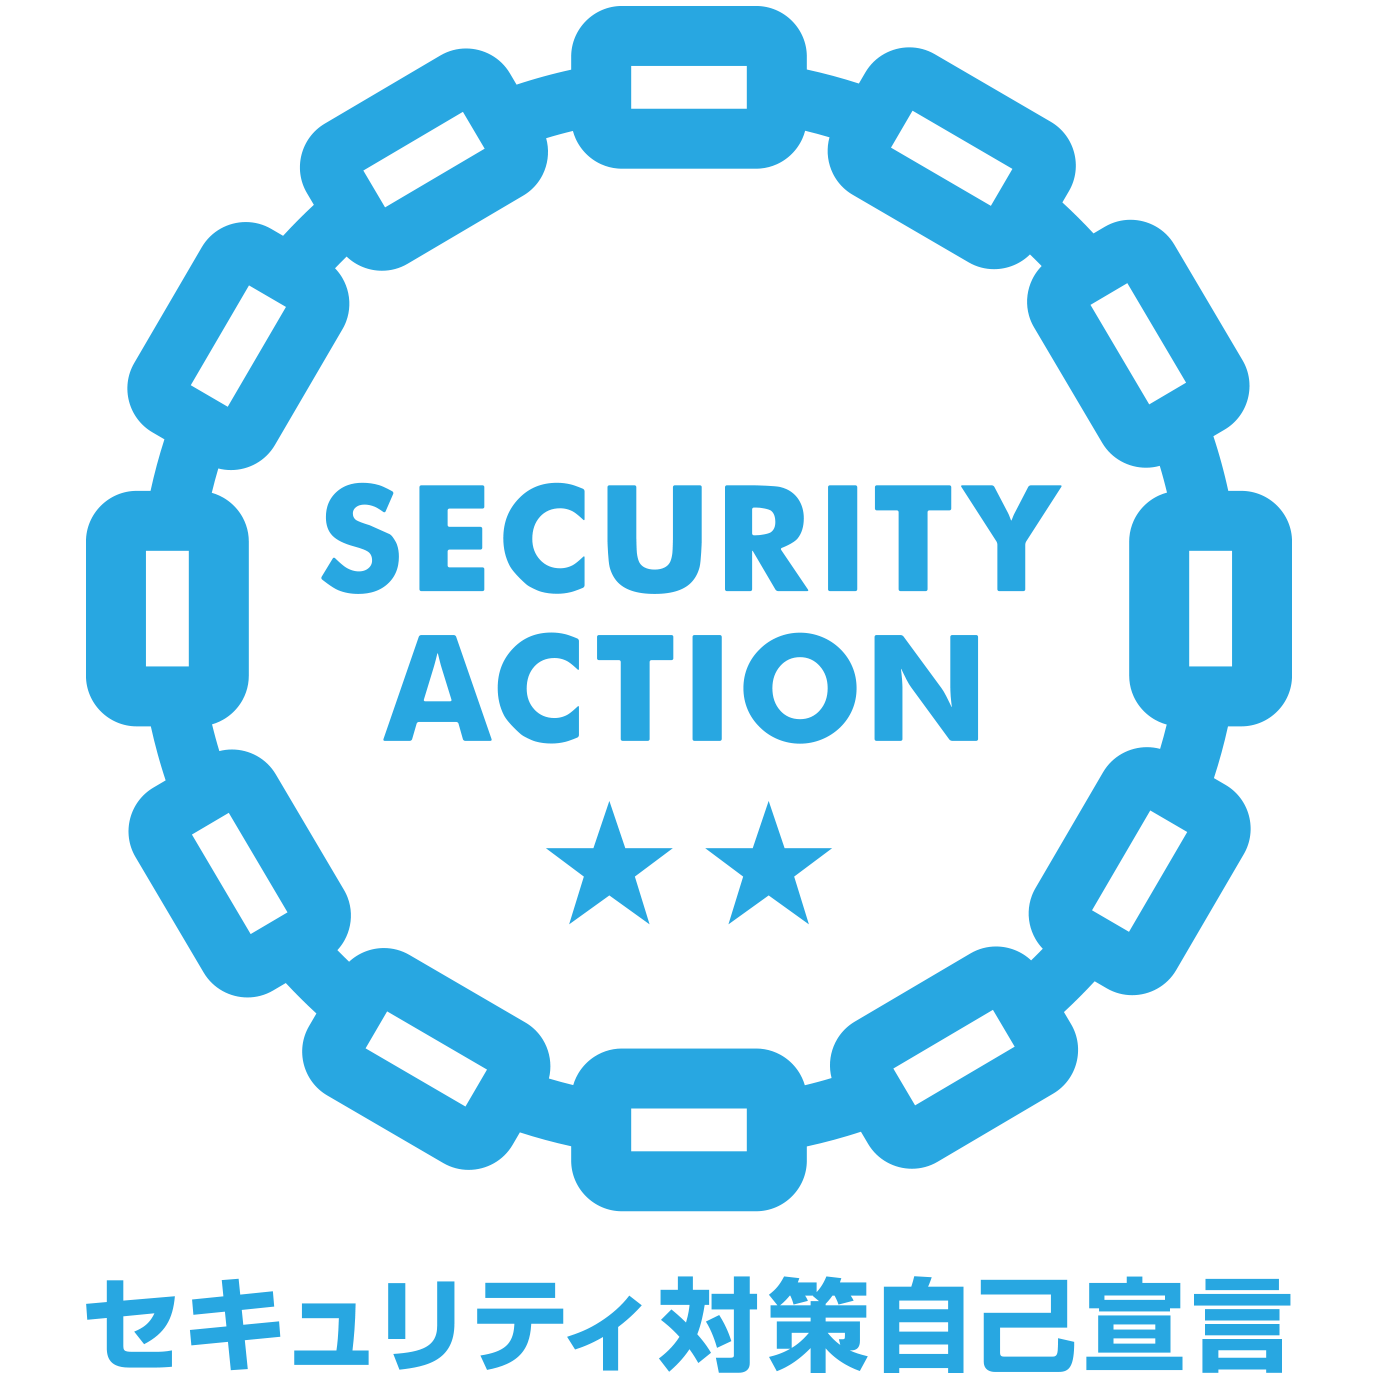 SECURITY ACTION (two-star)를 선언했습니다.